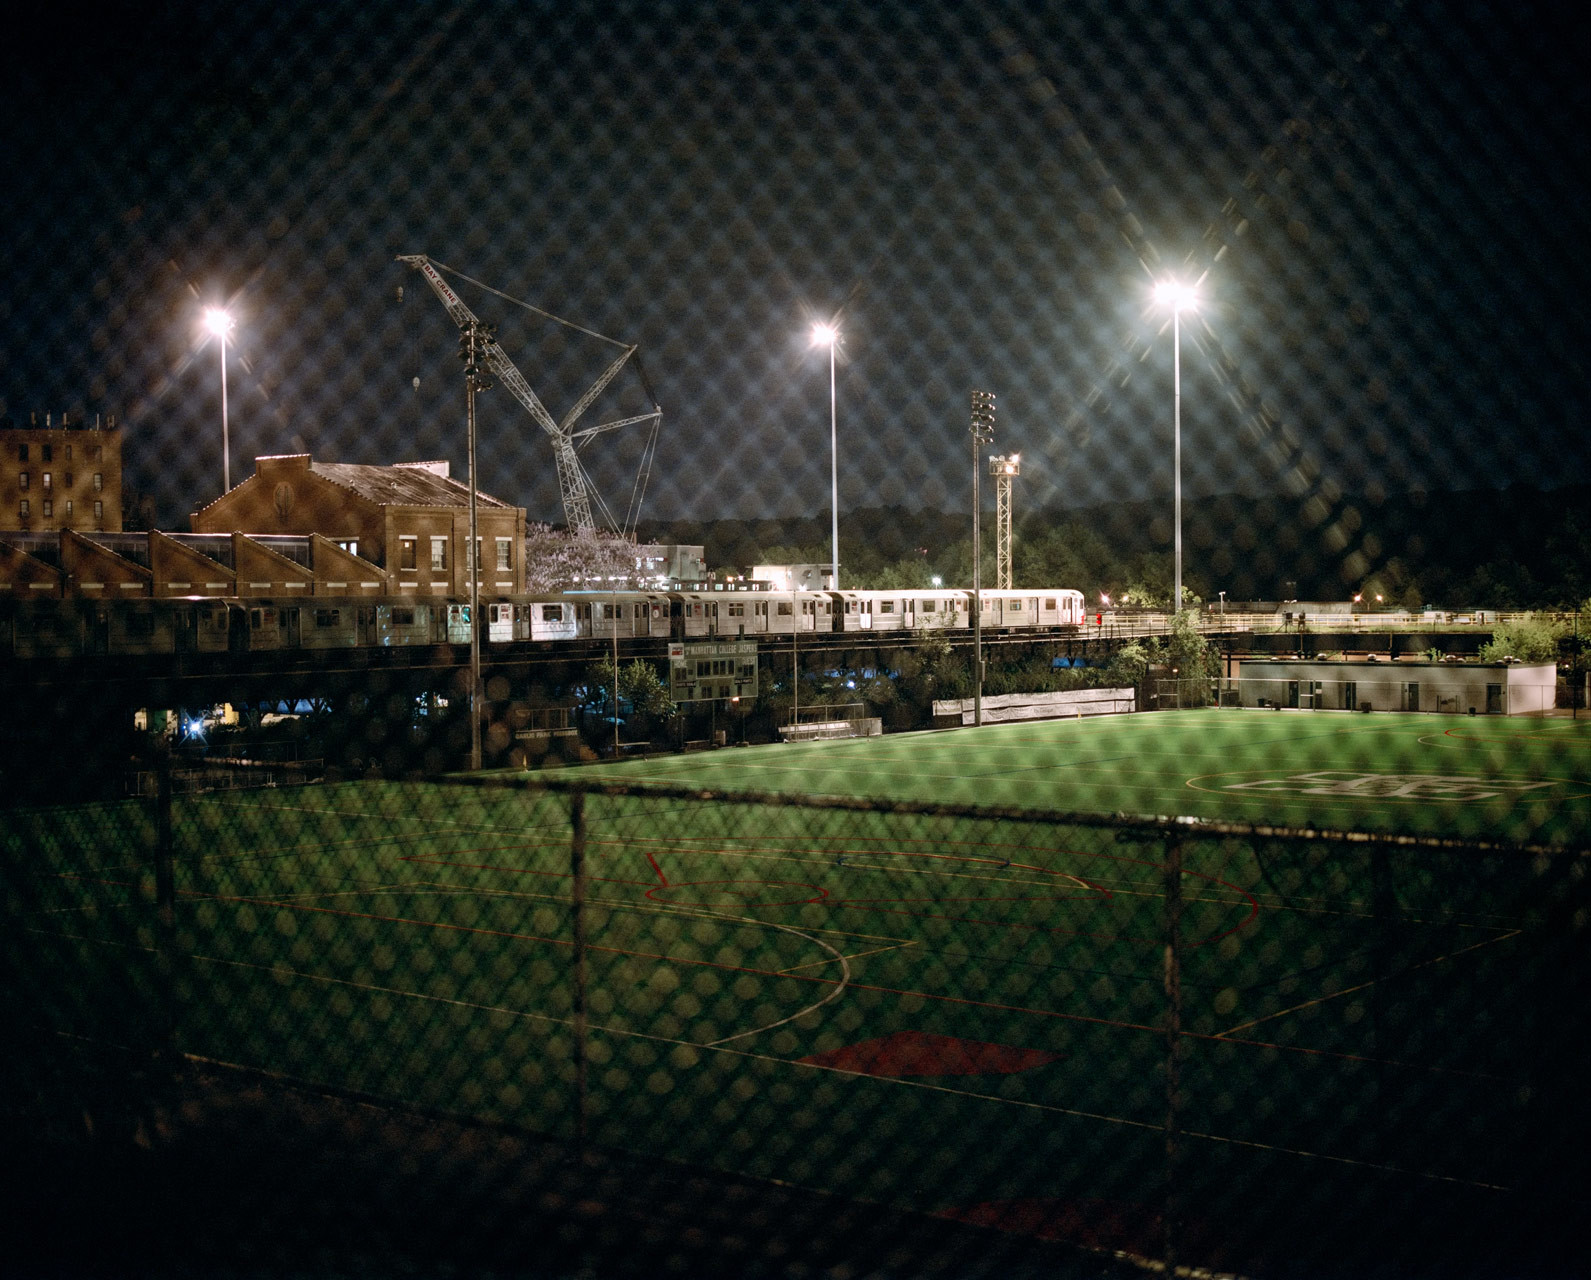 timo-stammberger-photography-new-york-city-bronx-subway-van-cortland-park-night-football-field